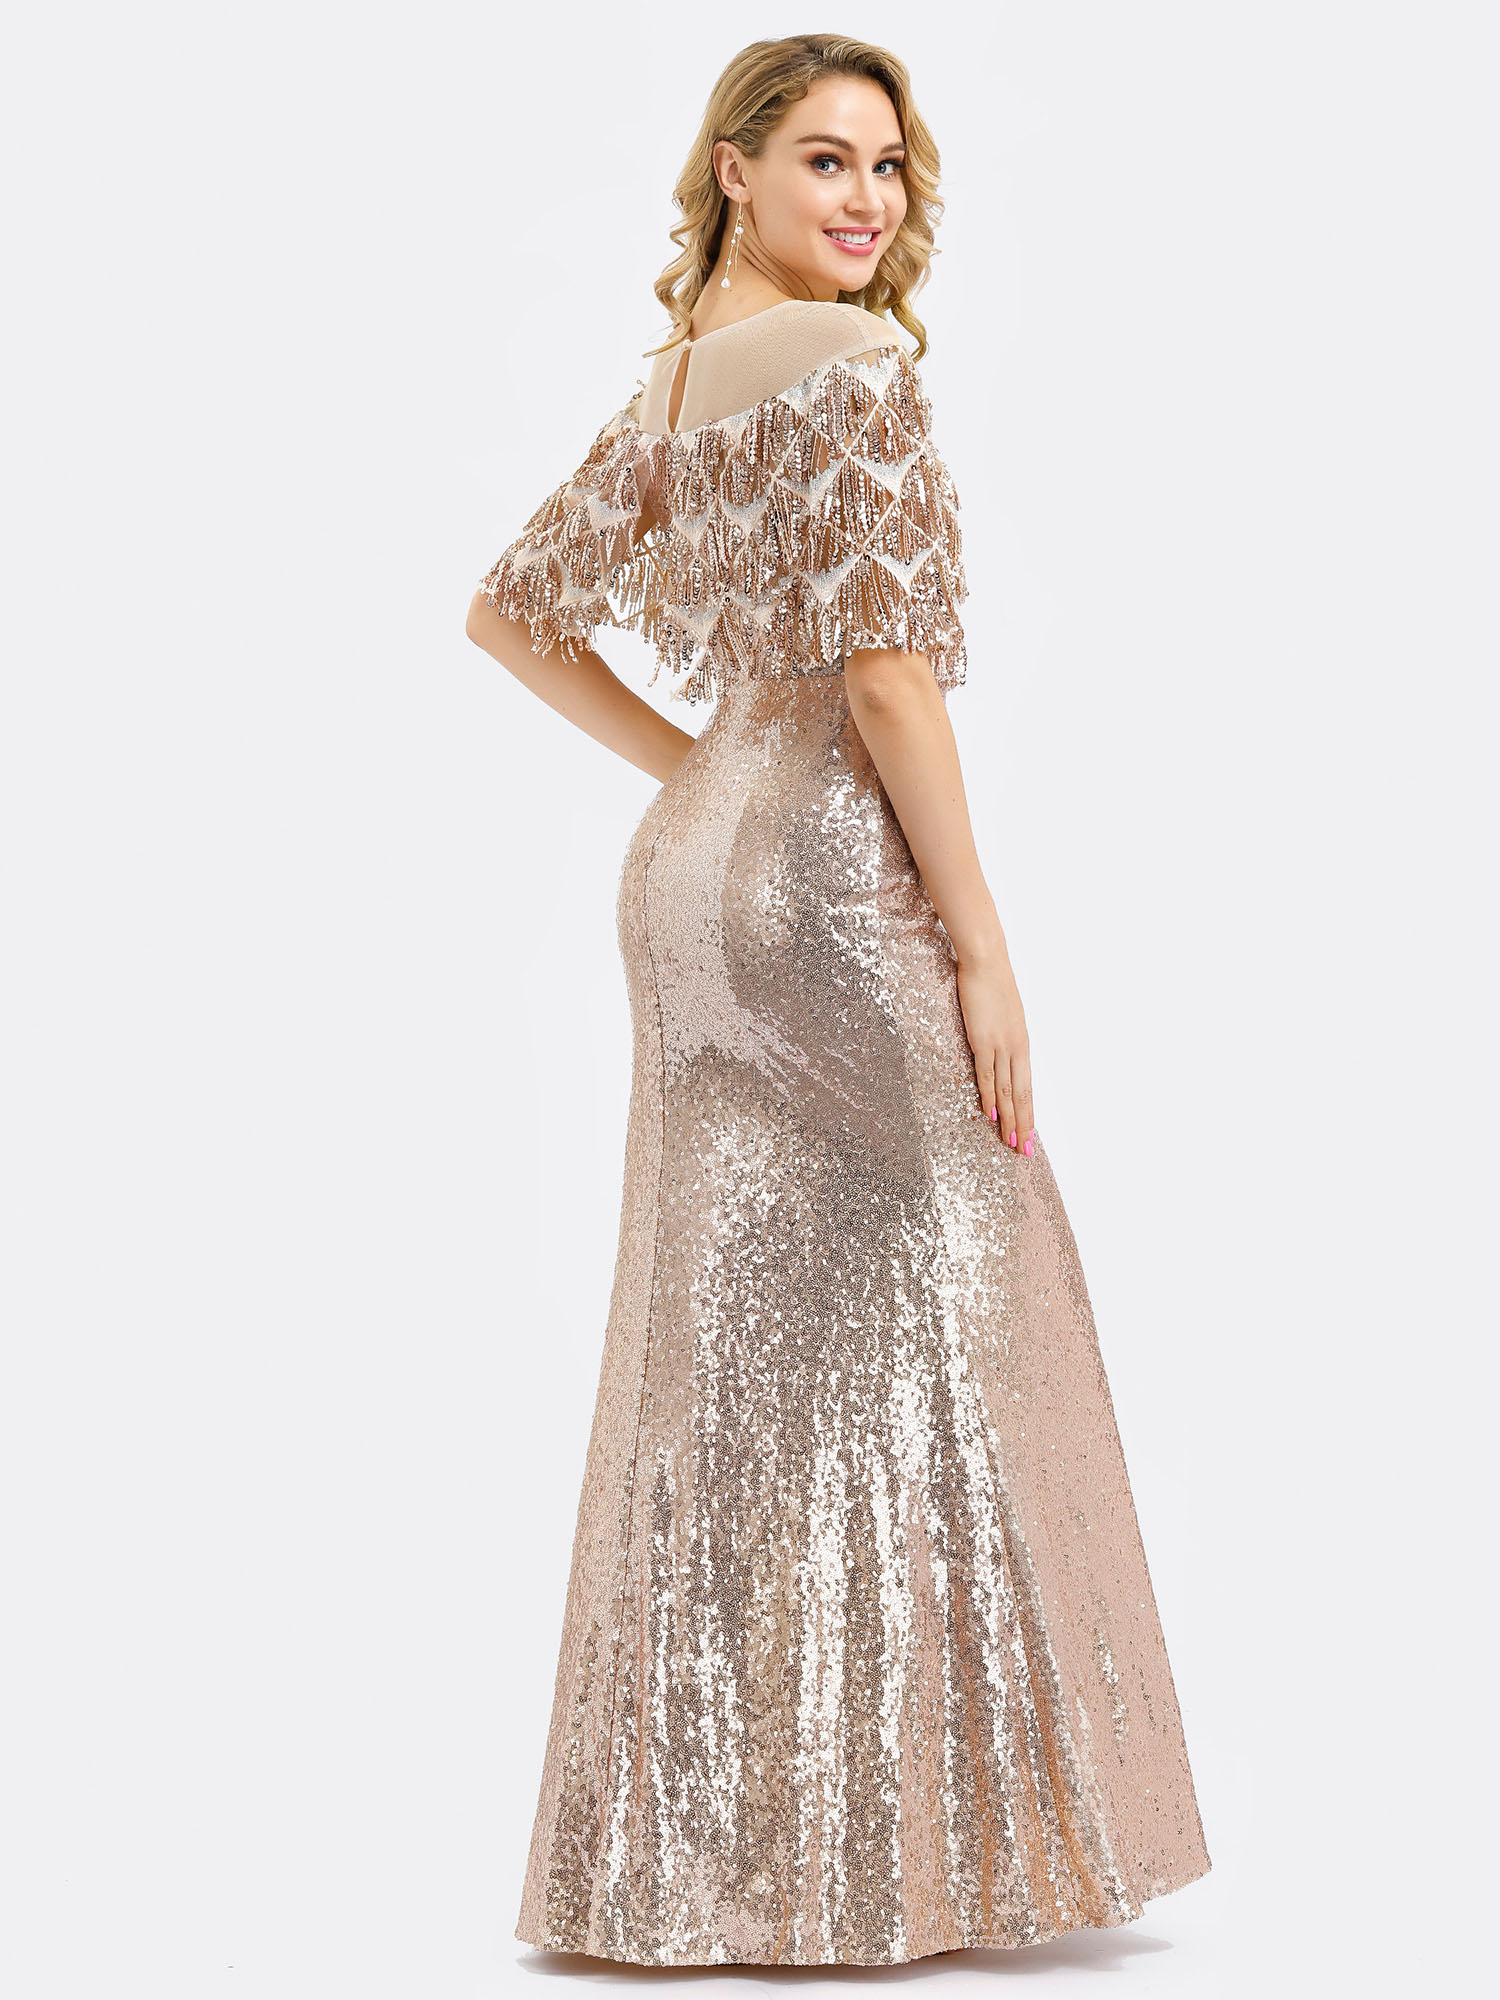 Ever-pretty-Formal-Celebrity-Party-Dresses-Mermaid-Evening-Cocktail-Prom-Gowns thumbnail 5